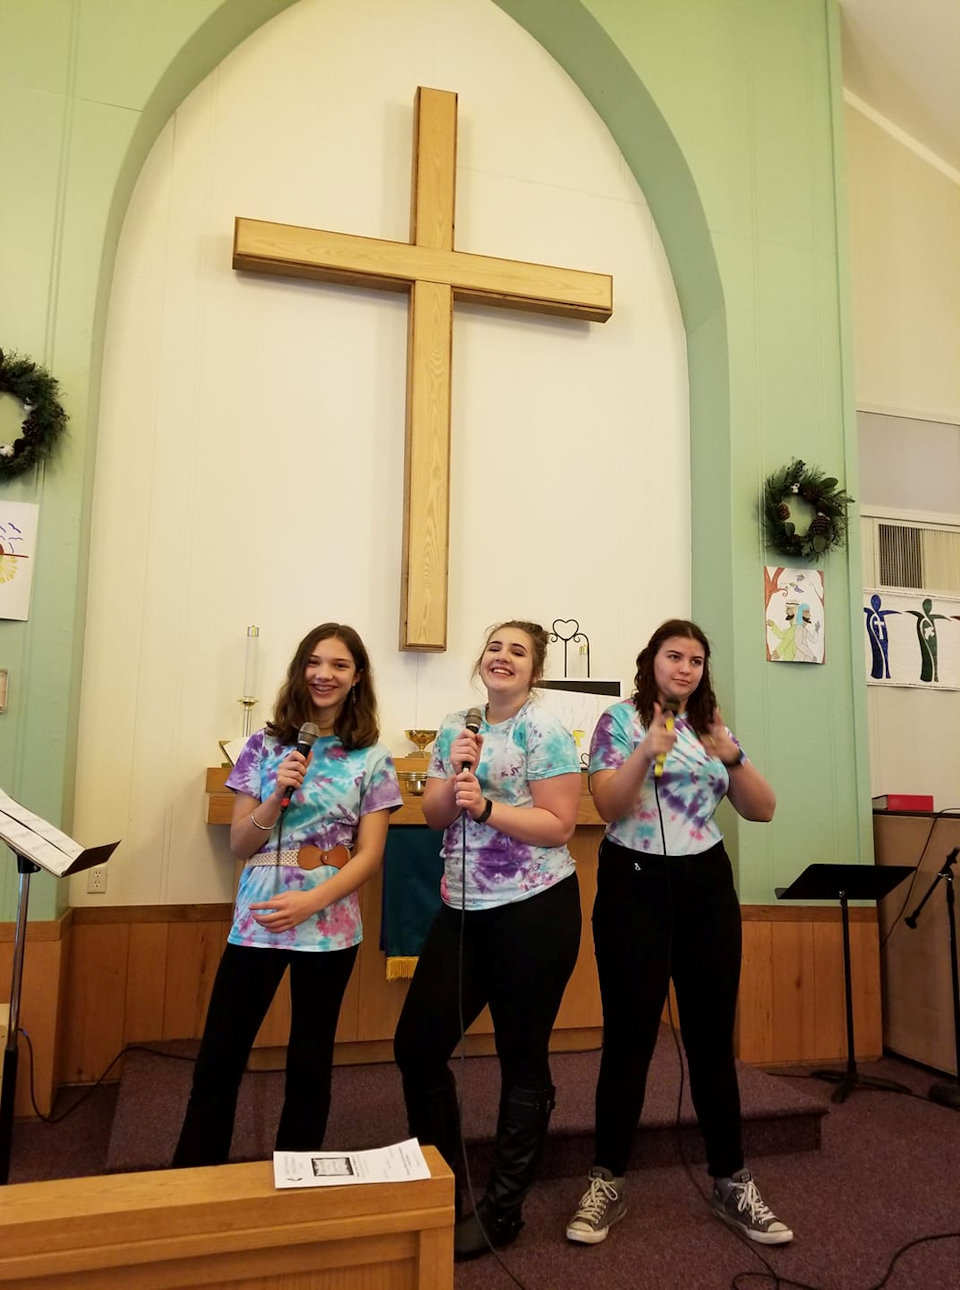 Youth lead worship at Bellaire UMC